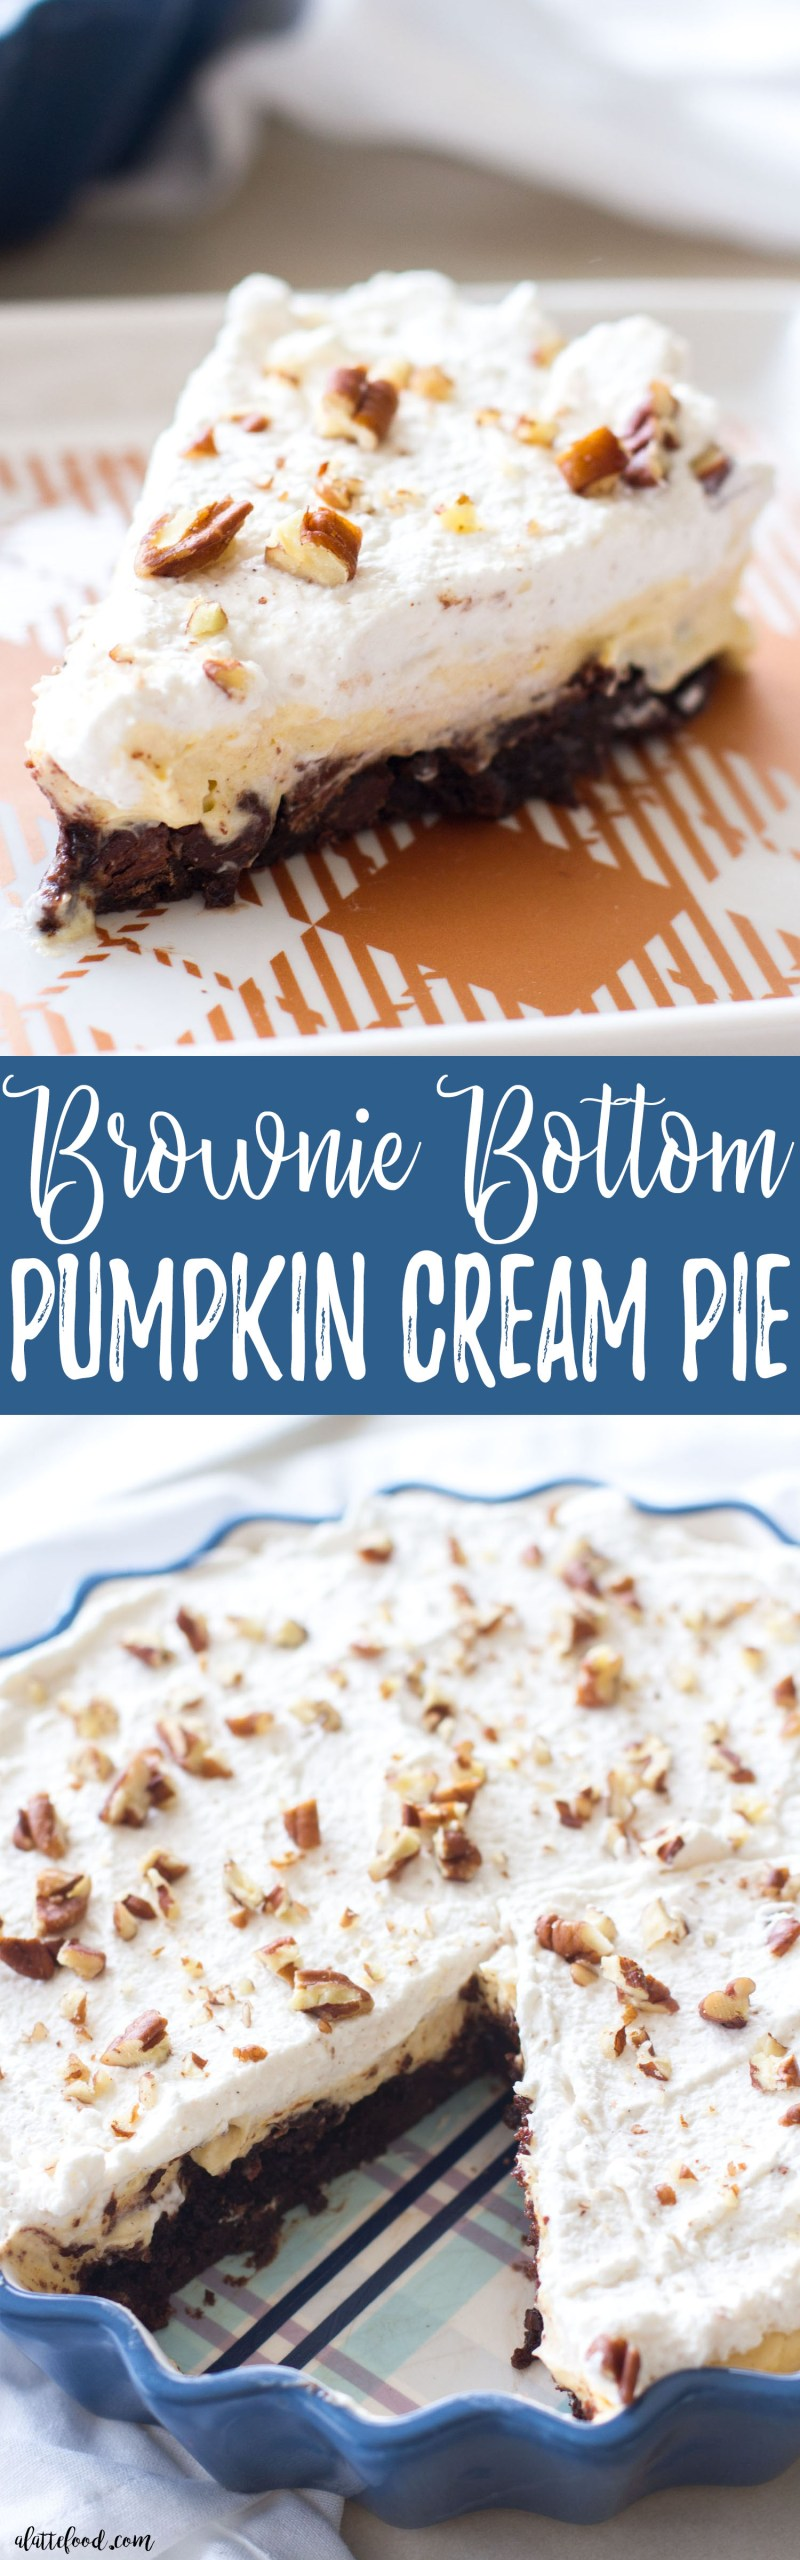 This easy pumpkin dessert is a brownie bottom pumpkin cream pie! Layers of brownie, pumpkin cream, and whipped cream make this fall dessert irresistible!